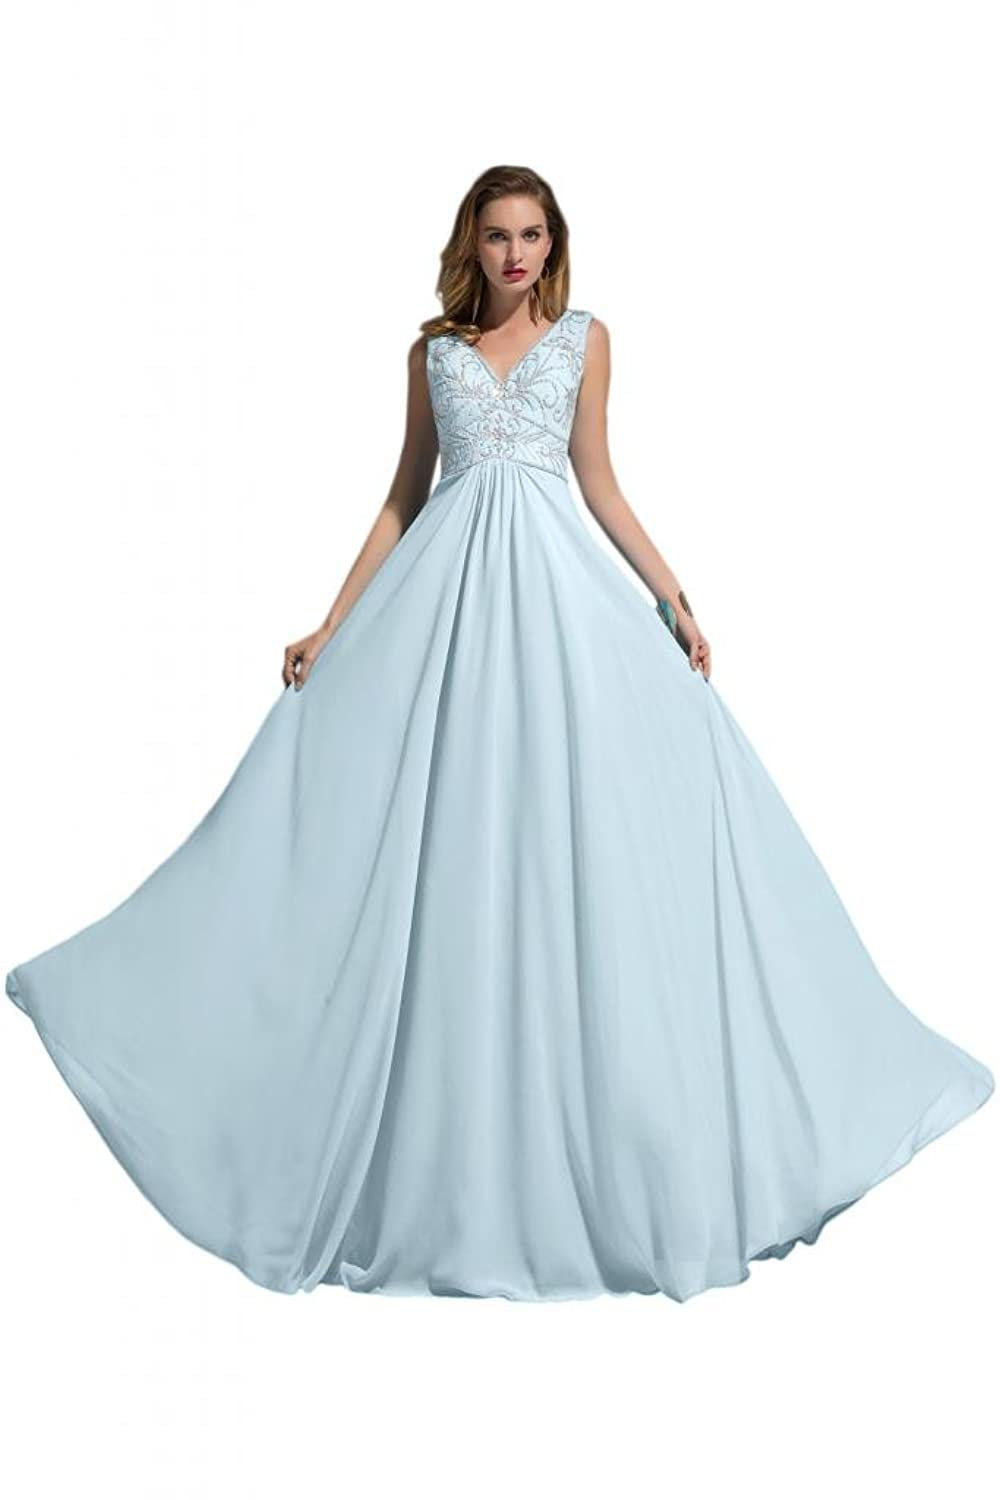 Sunvary Mini Cute Girl Taffeta Open Back Homecoming Dresses Party Gowns